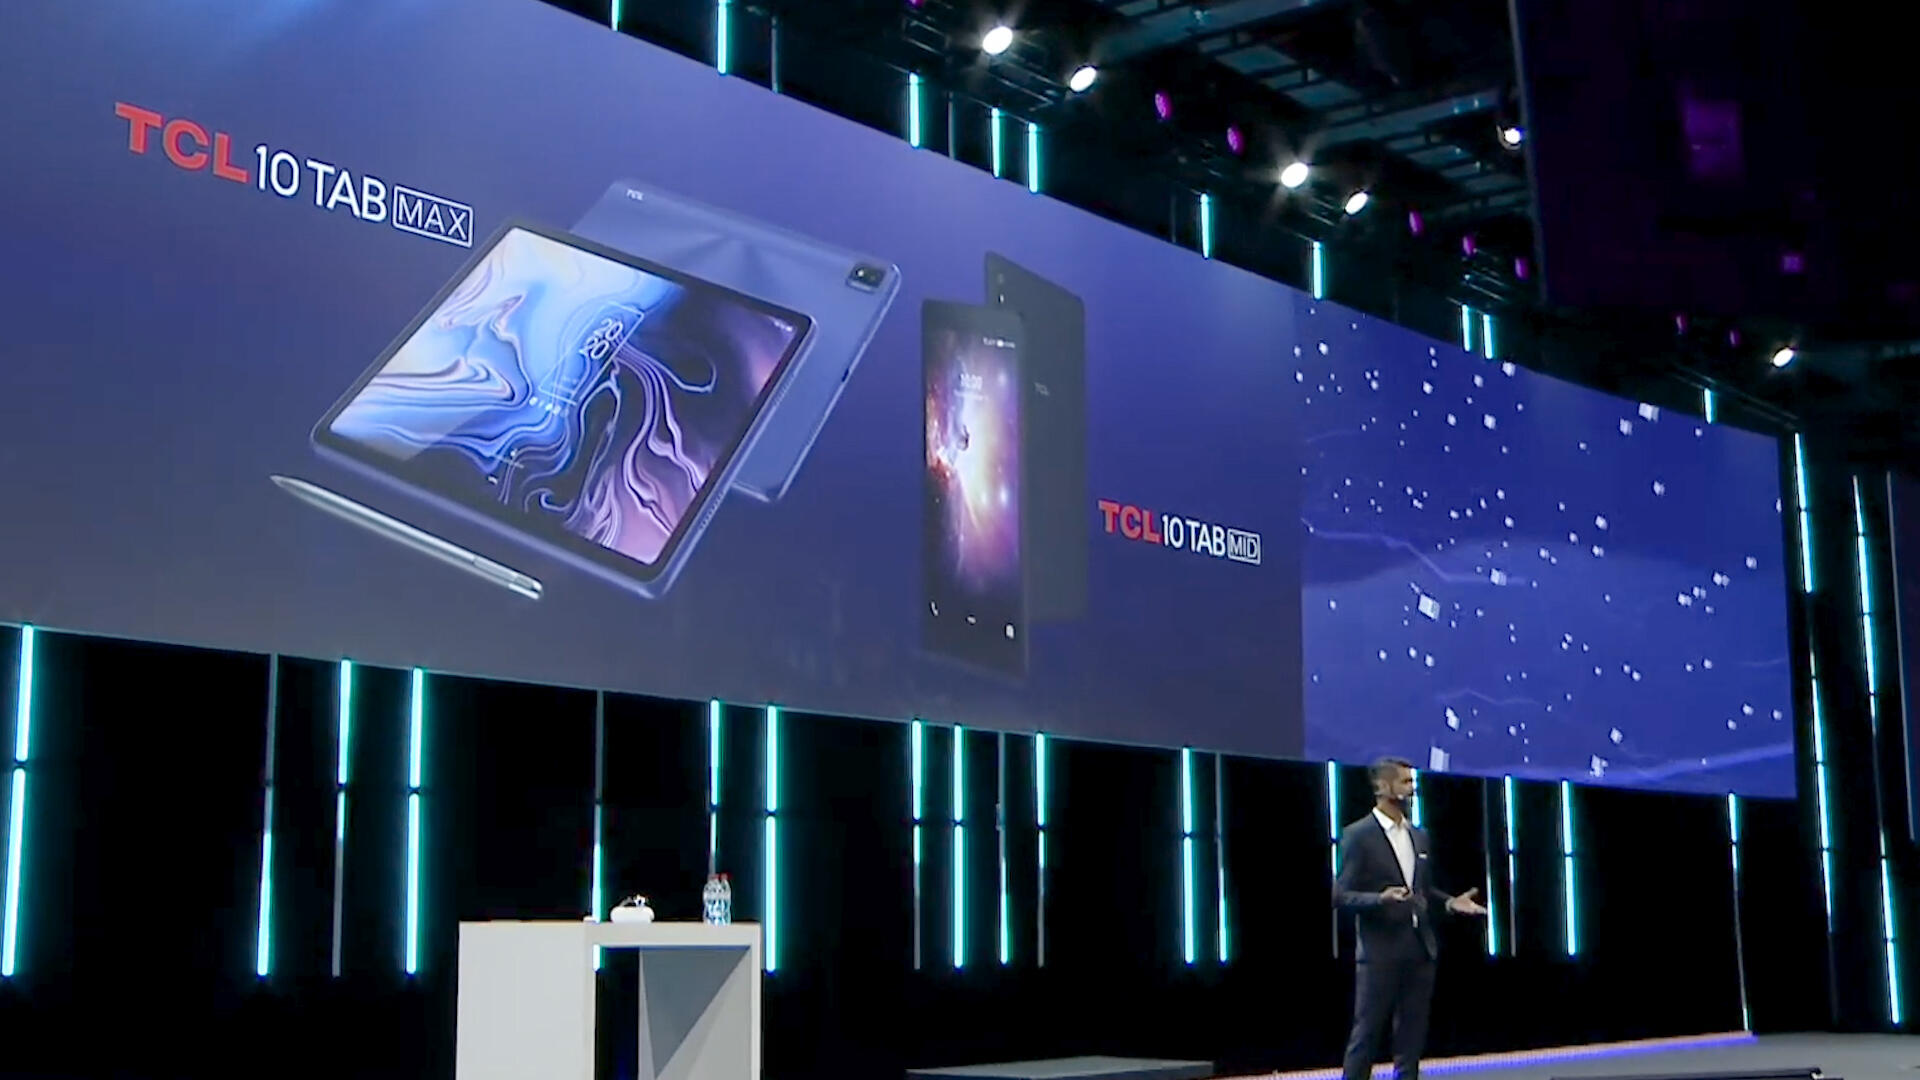 Video: TCL touts TV tech on two 10-inch tablets